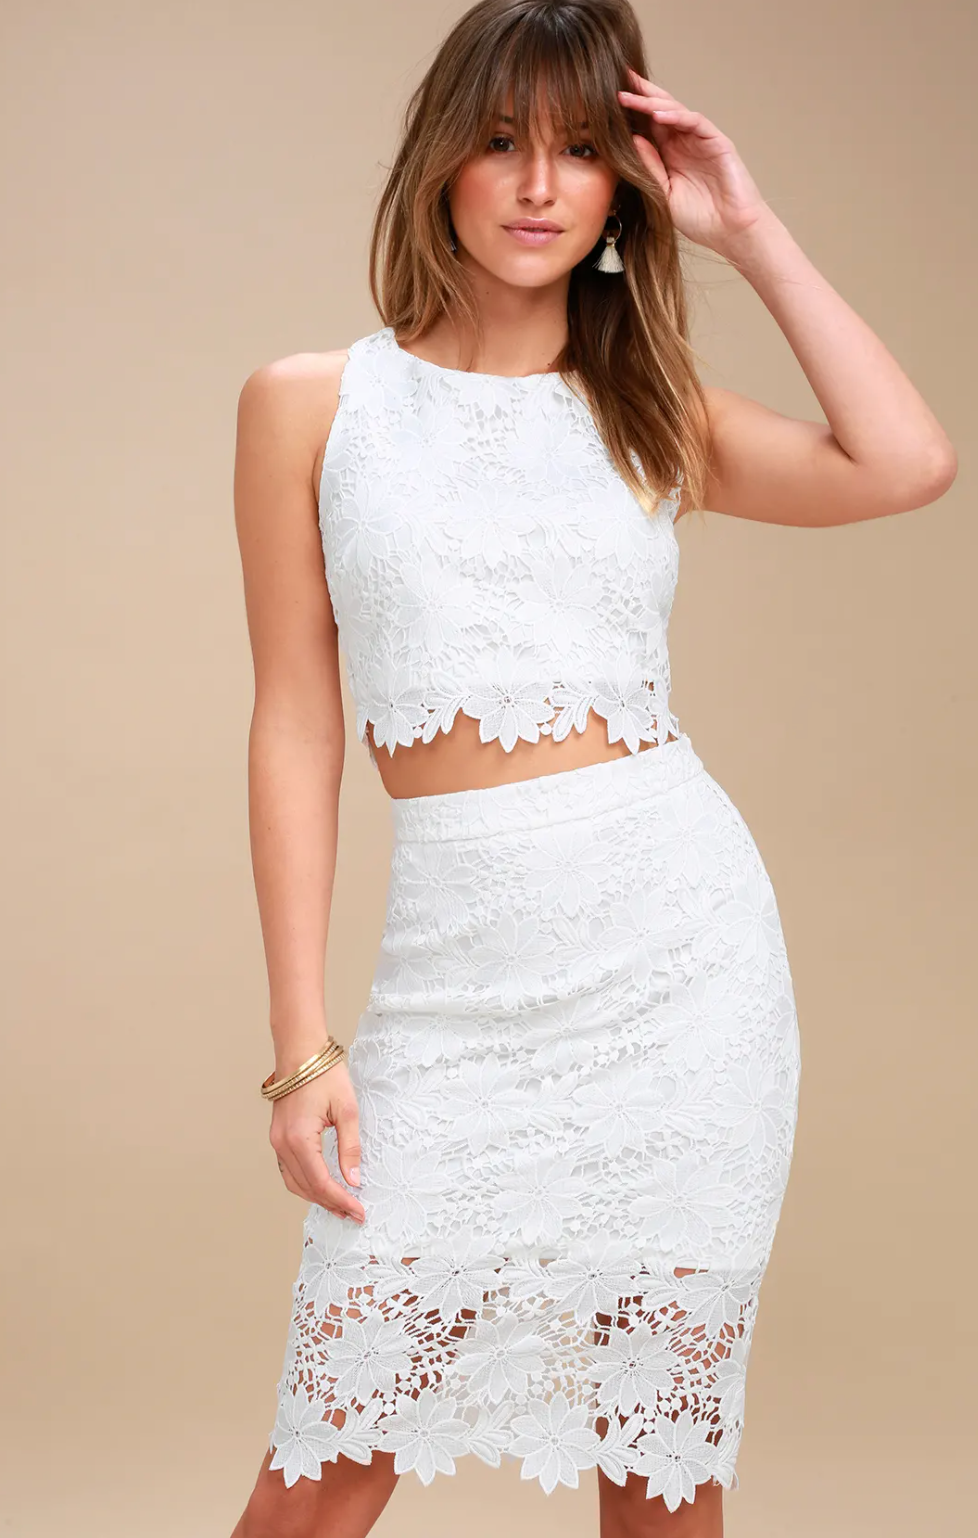 White lace two-piece dress from Lulu's